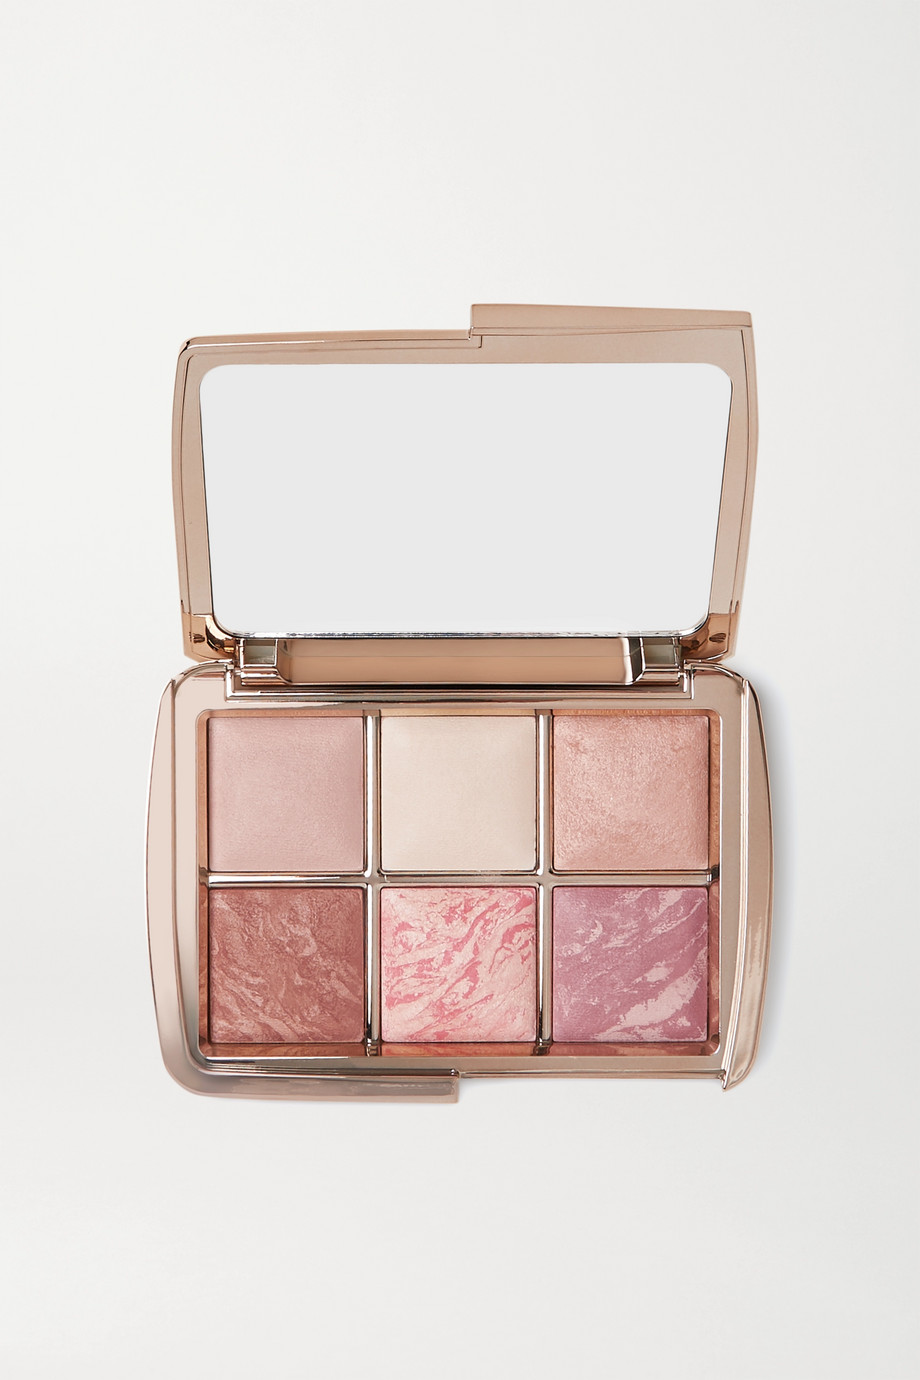 Hourglass Ambient Lighting Edit - Sculpture